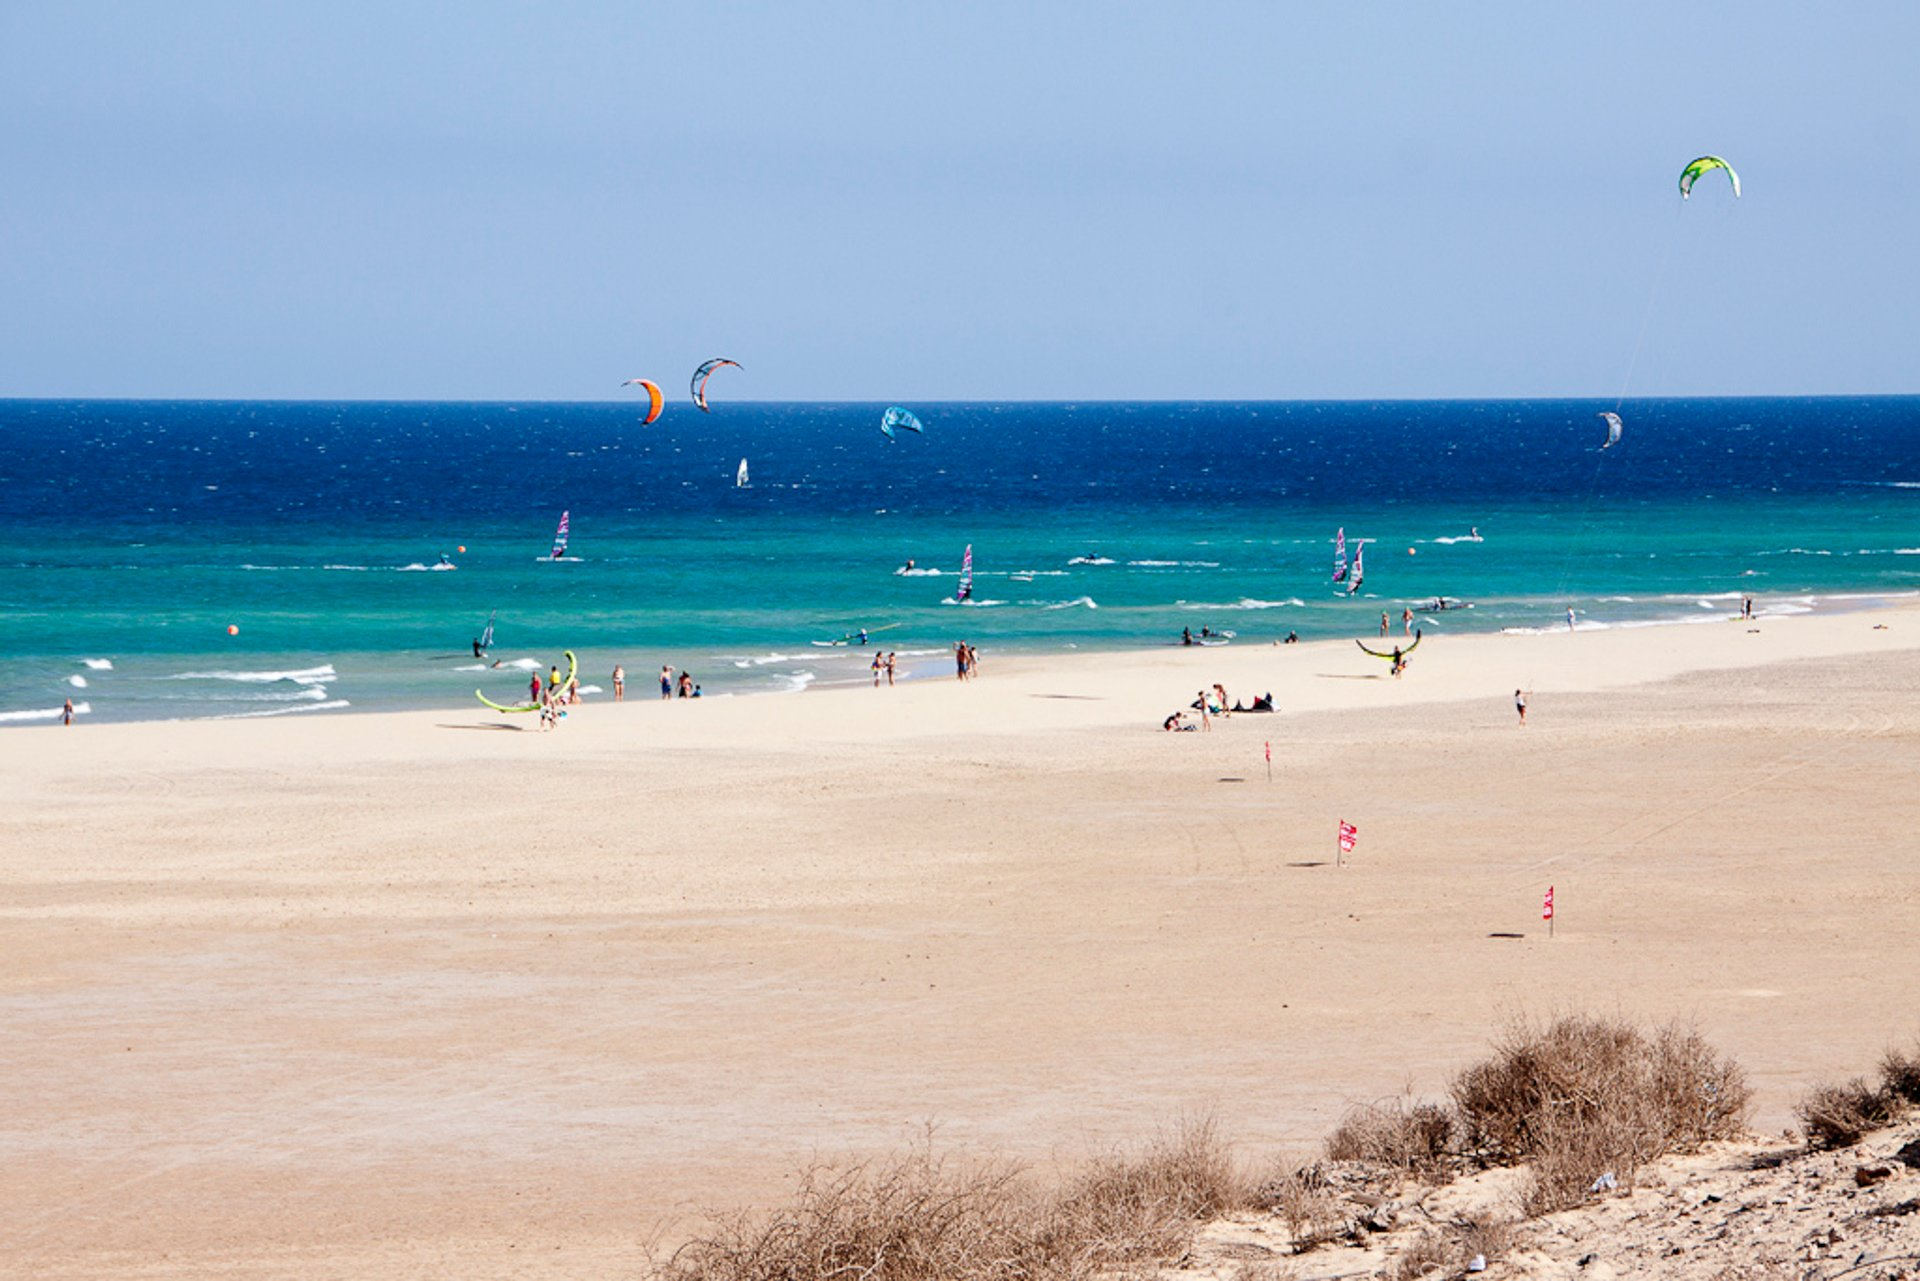 Fuerteventura Windsurfing & Kitesurfing World Cup in Canary Islands - Best Season 2019